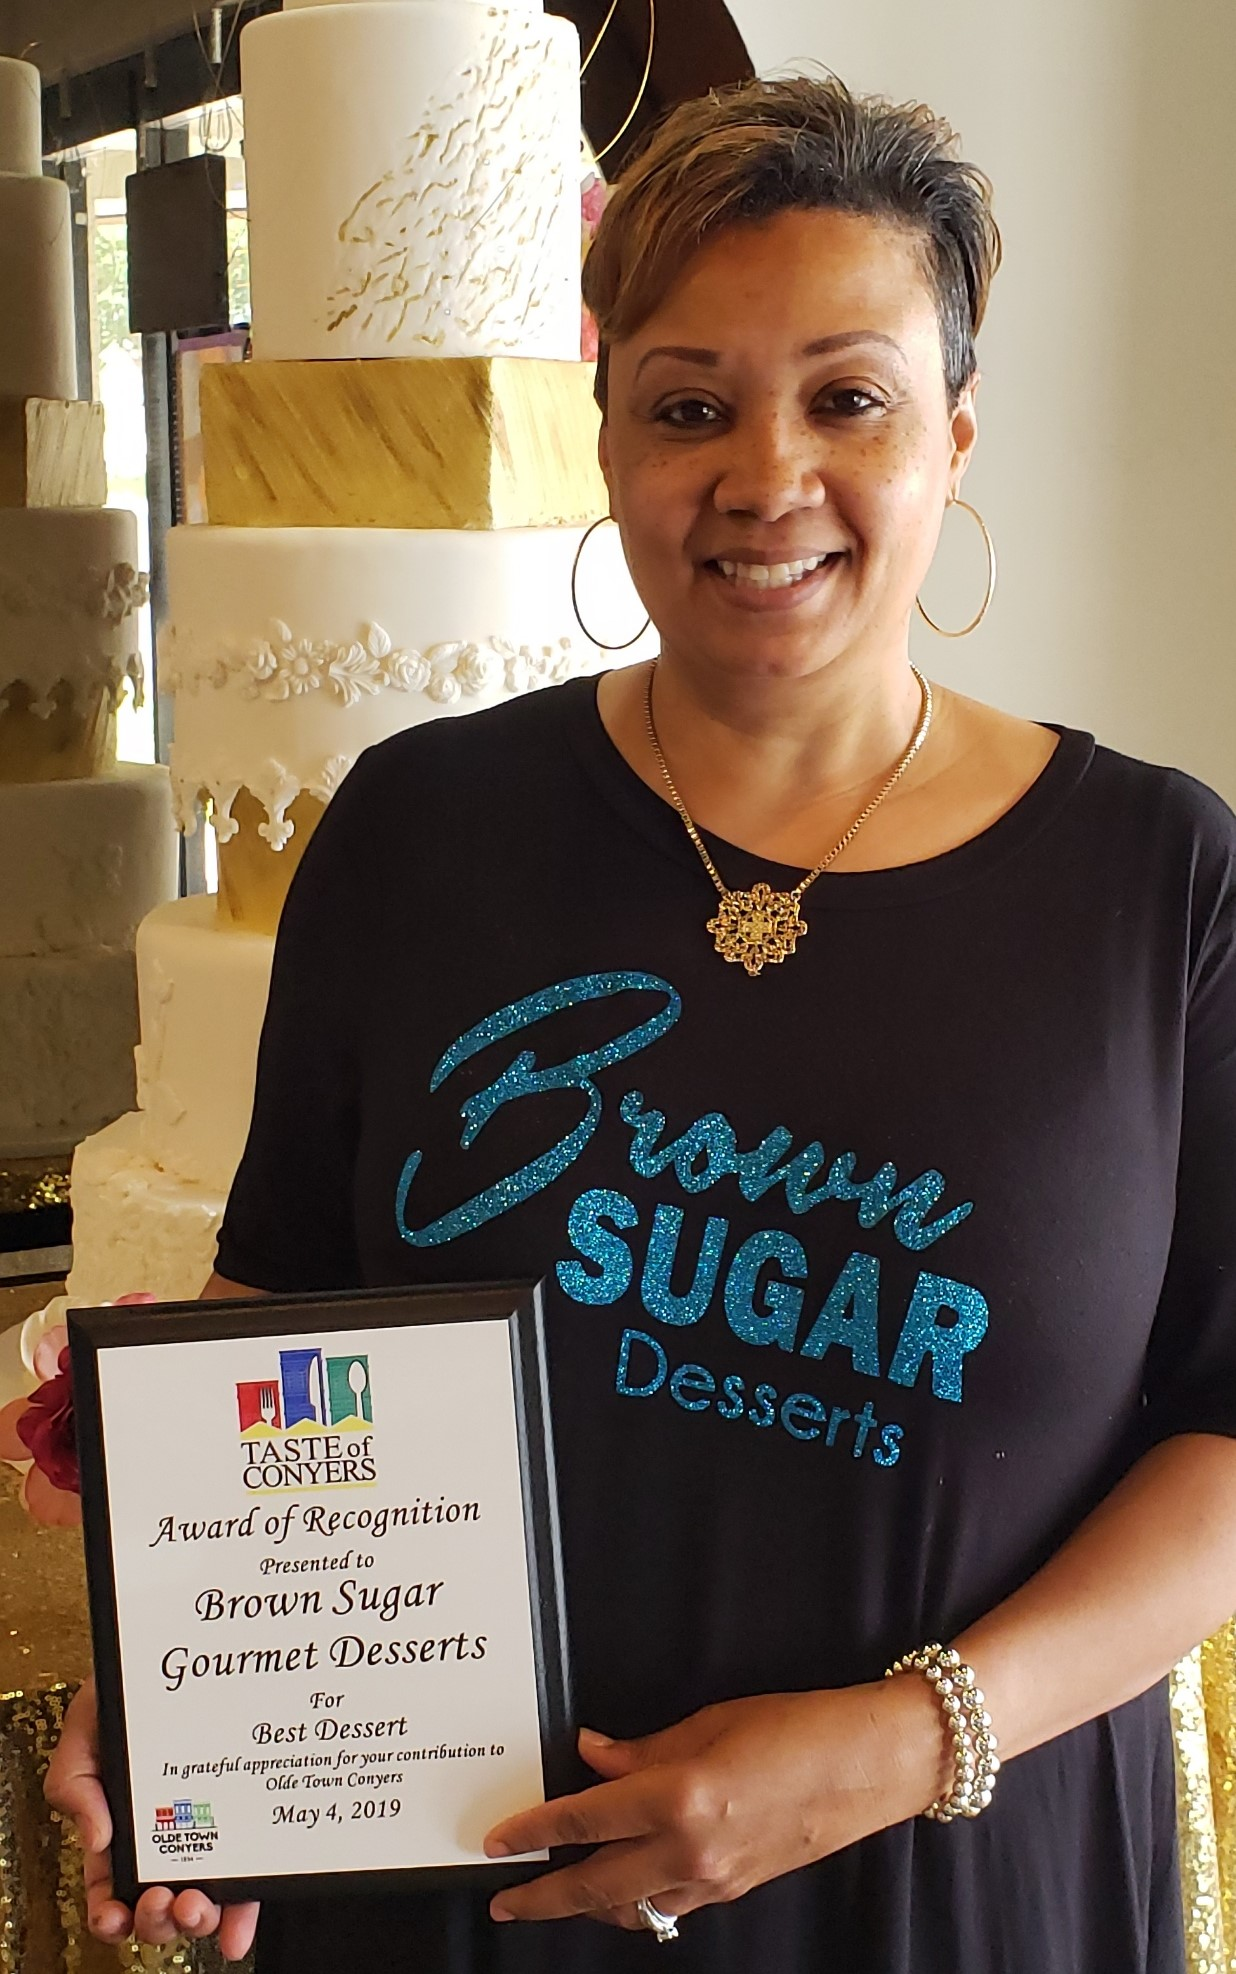 Best Dessert - Brown Sugar Gourmet Desserts